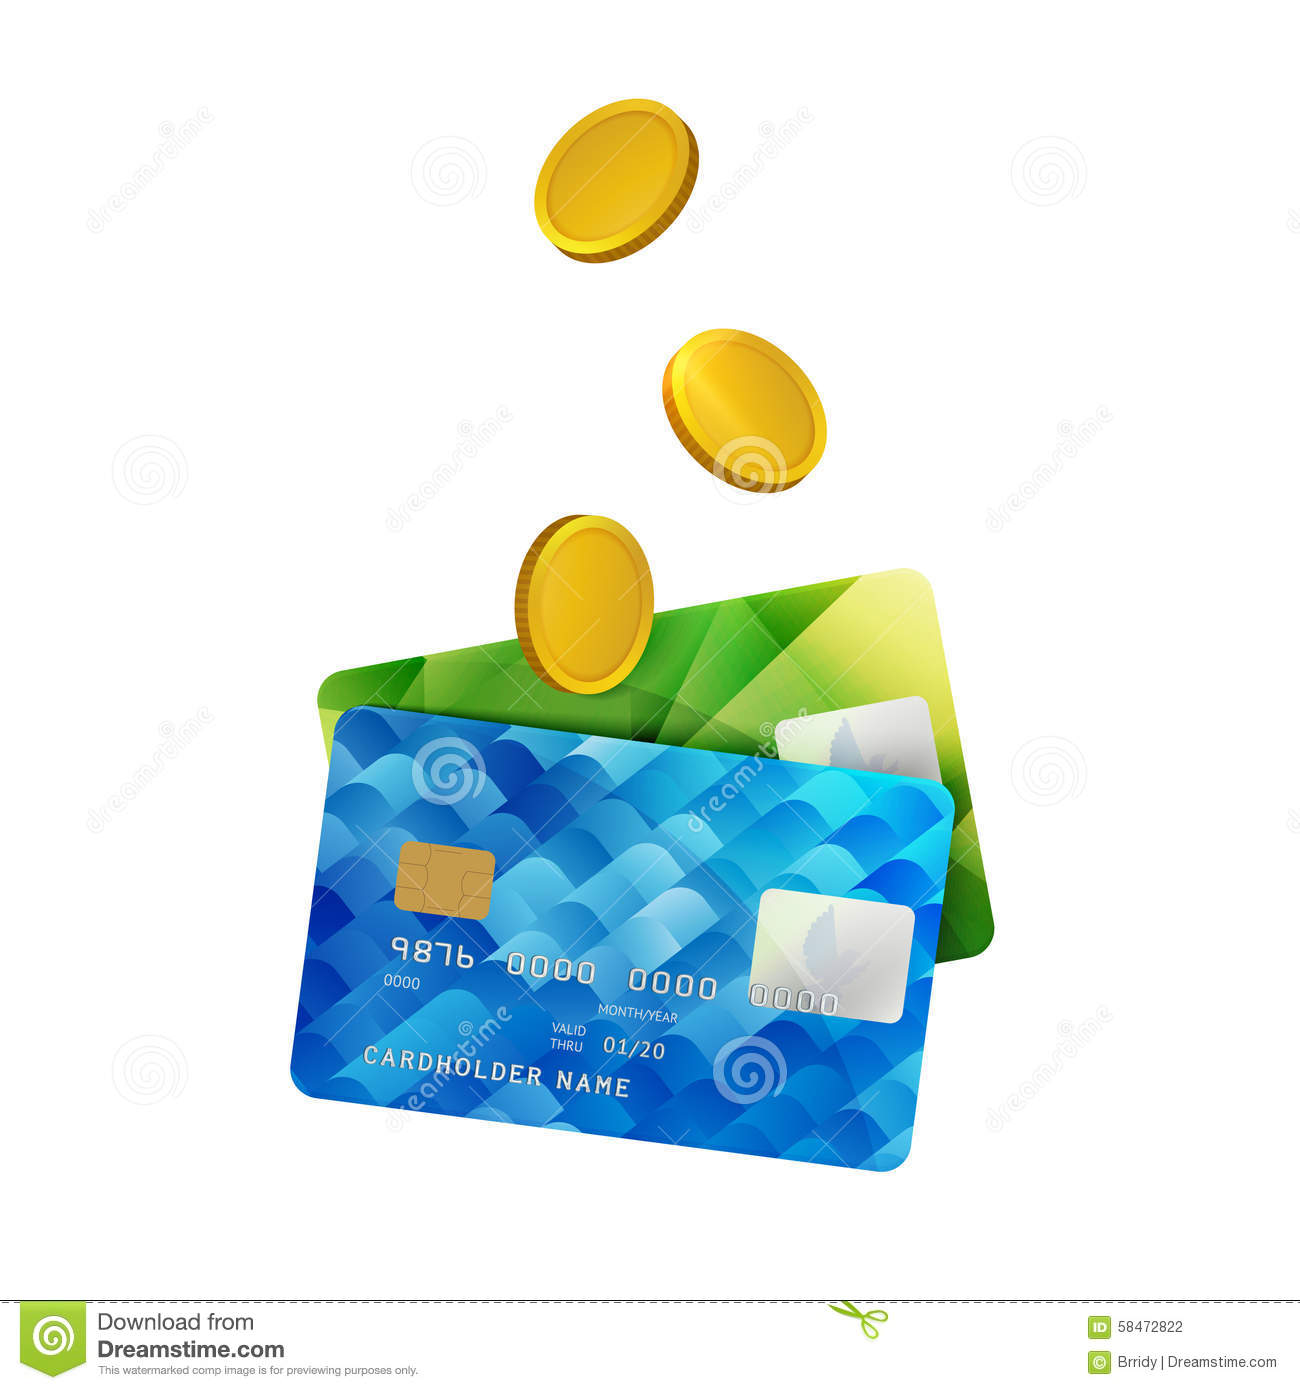 Plastikbank Vector Icon Of Two Payment Cards Royalty Free Stock Photo